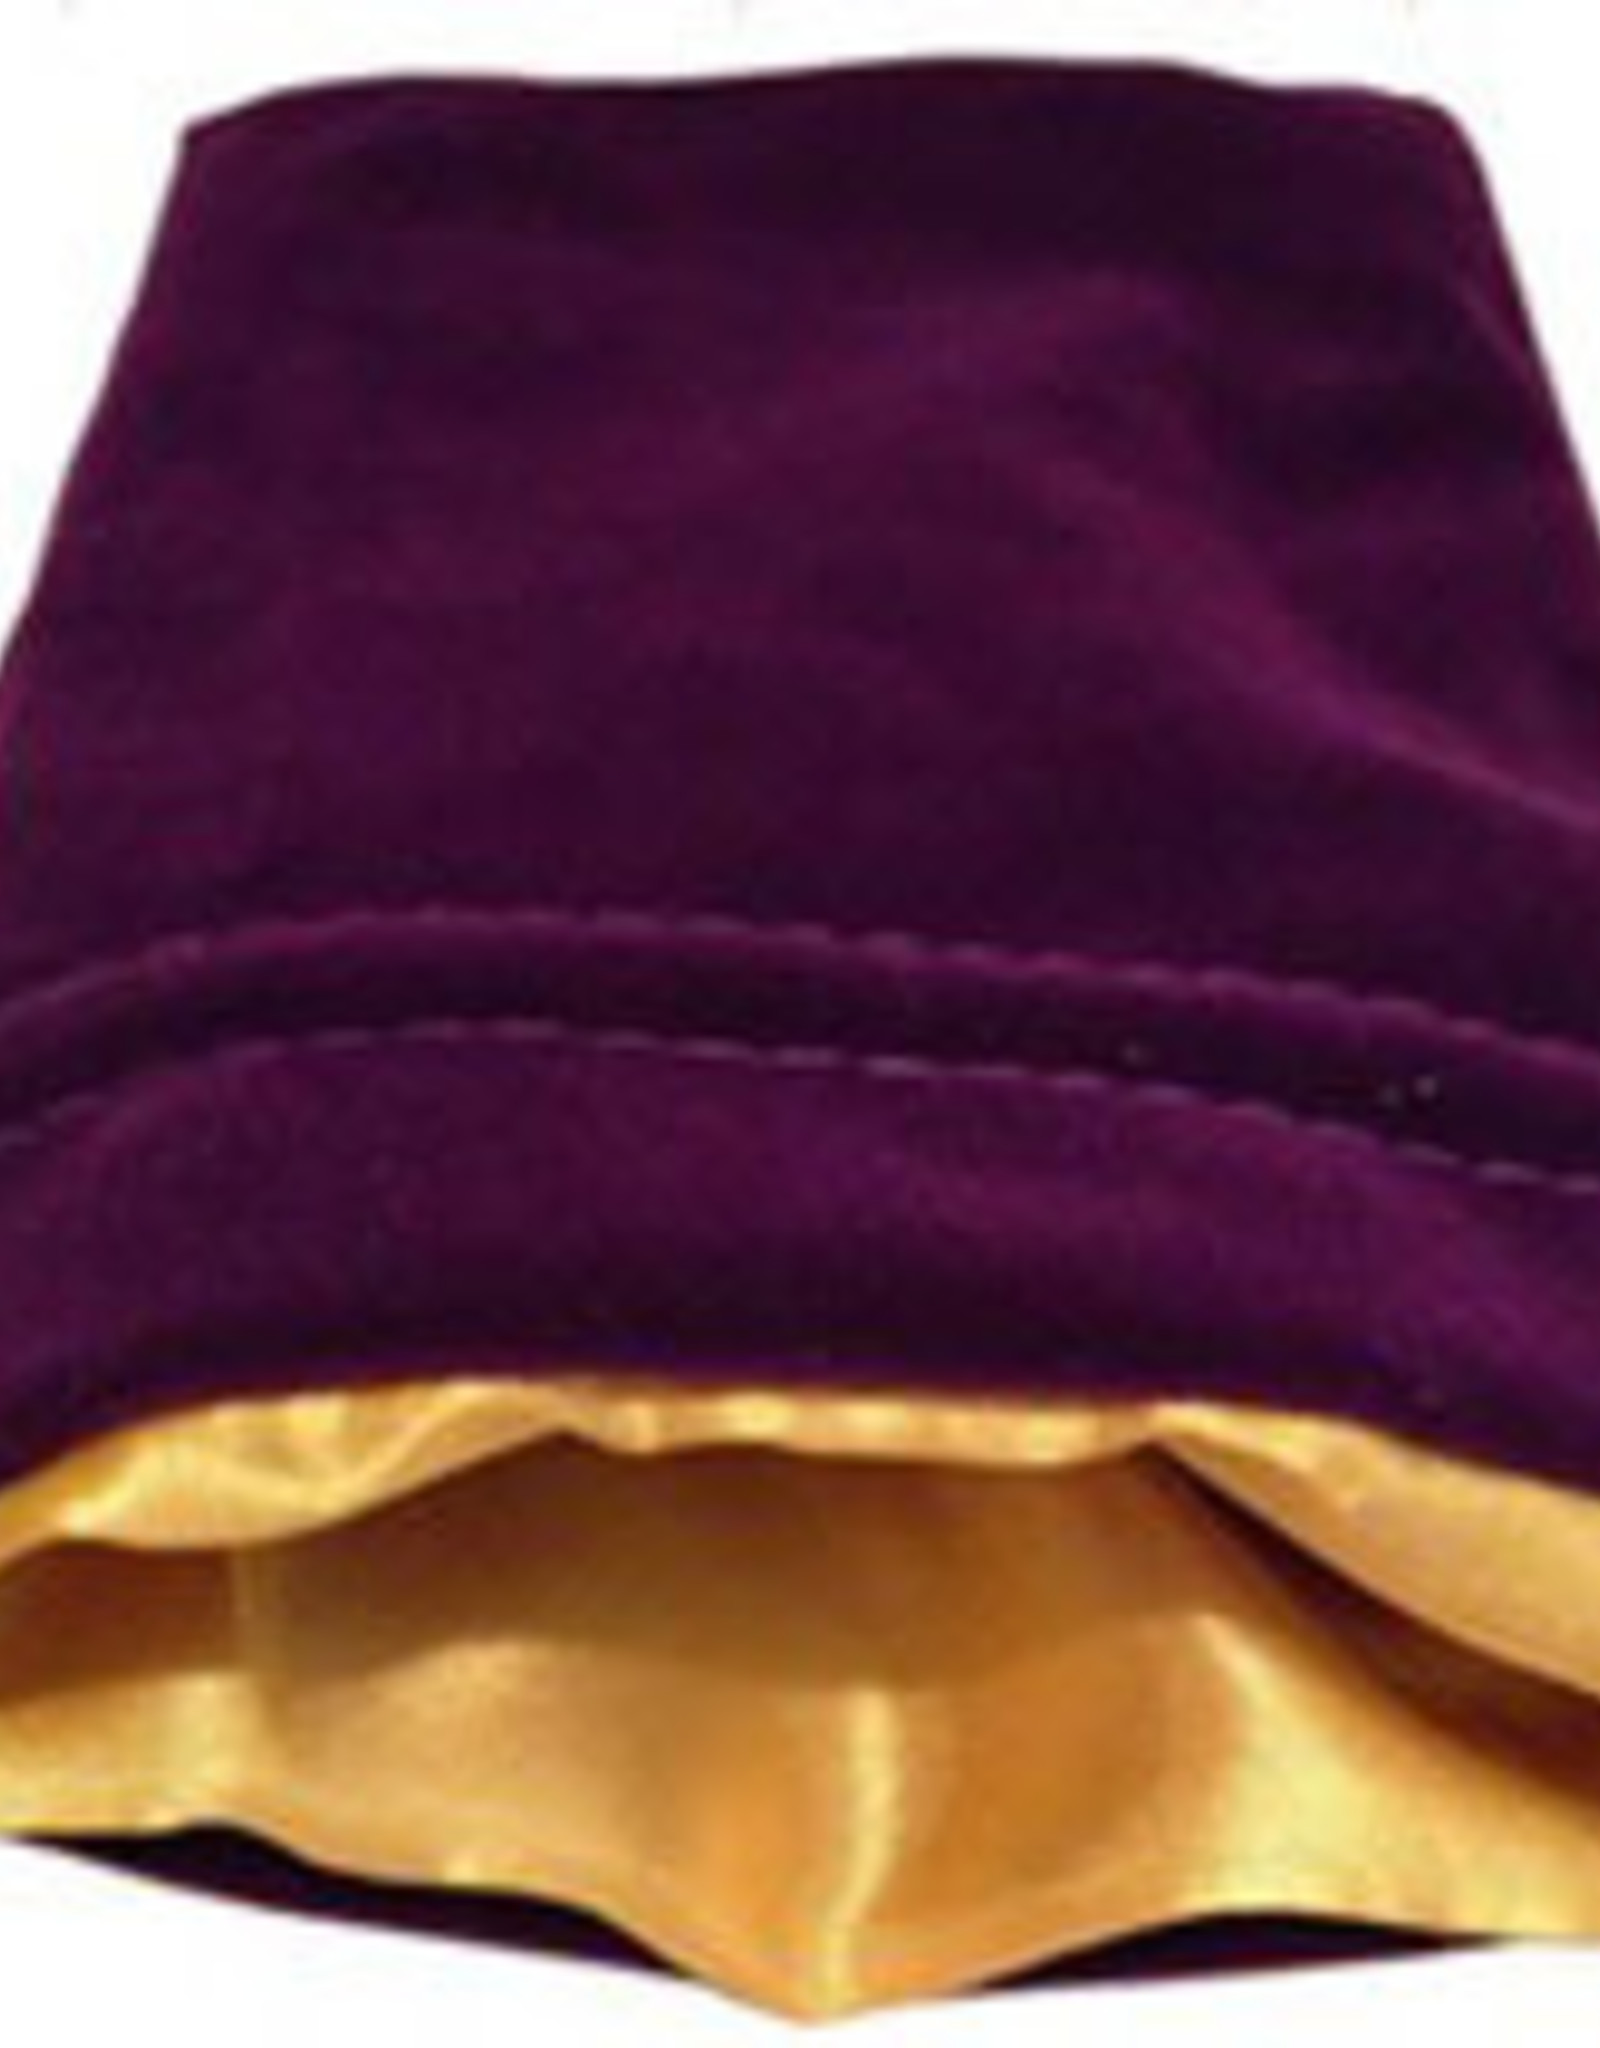 Metallic Dice Games 4in x 6in SMALL Purple Velvet Dice Bag with Gold Satin Lining